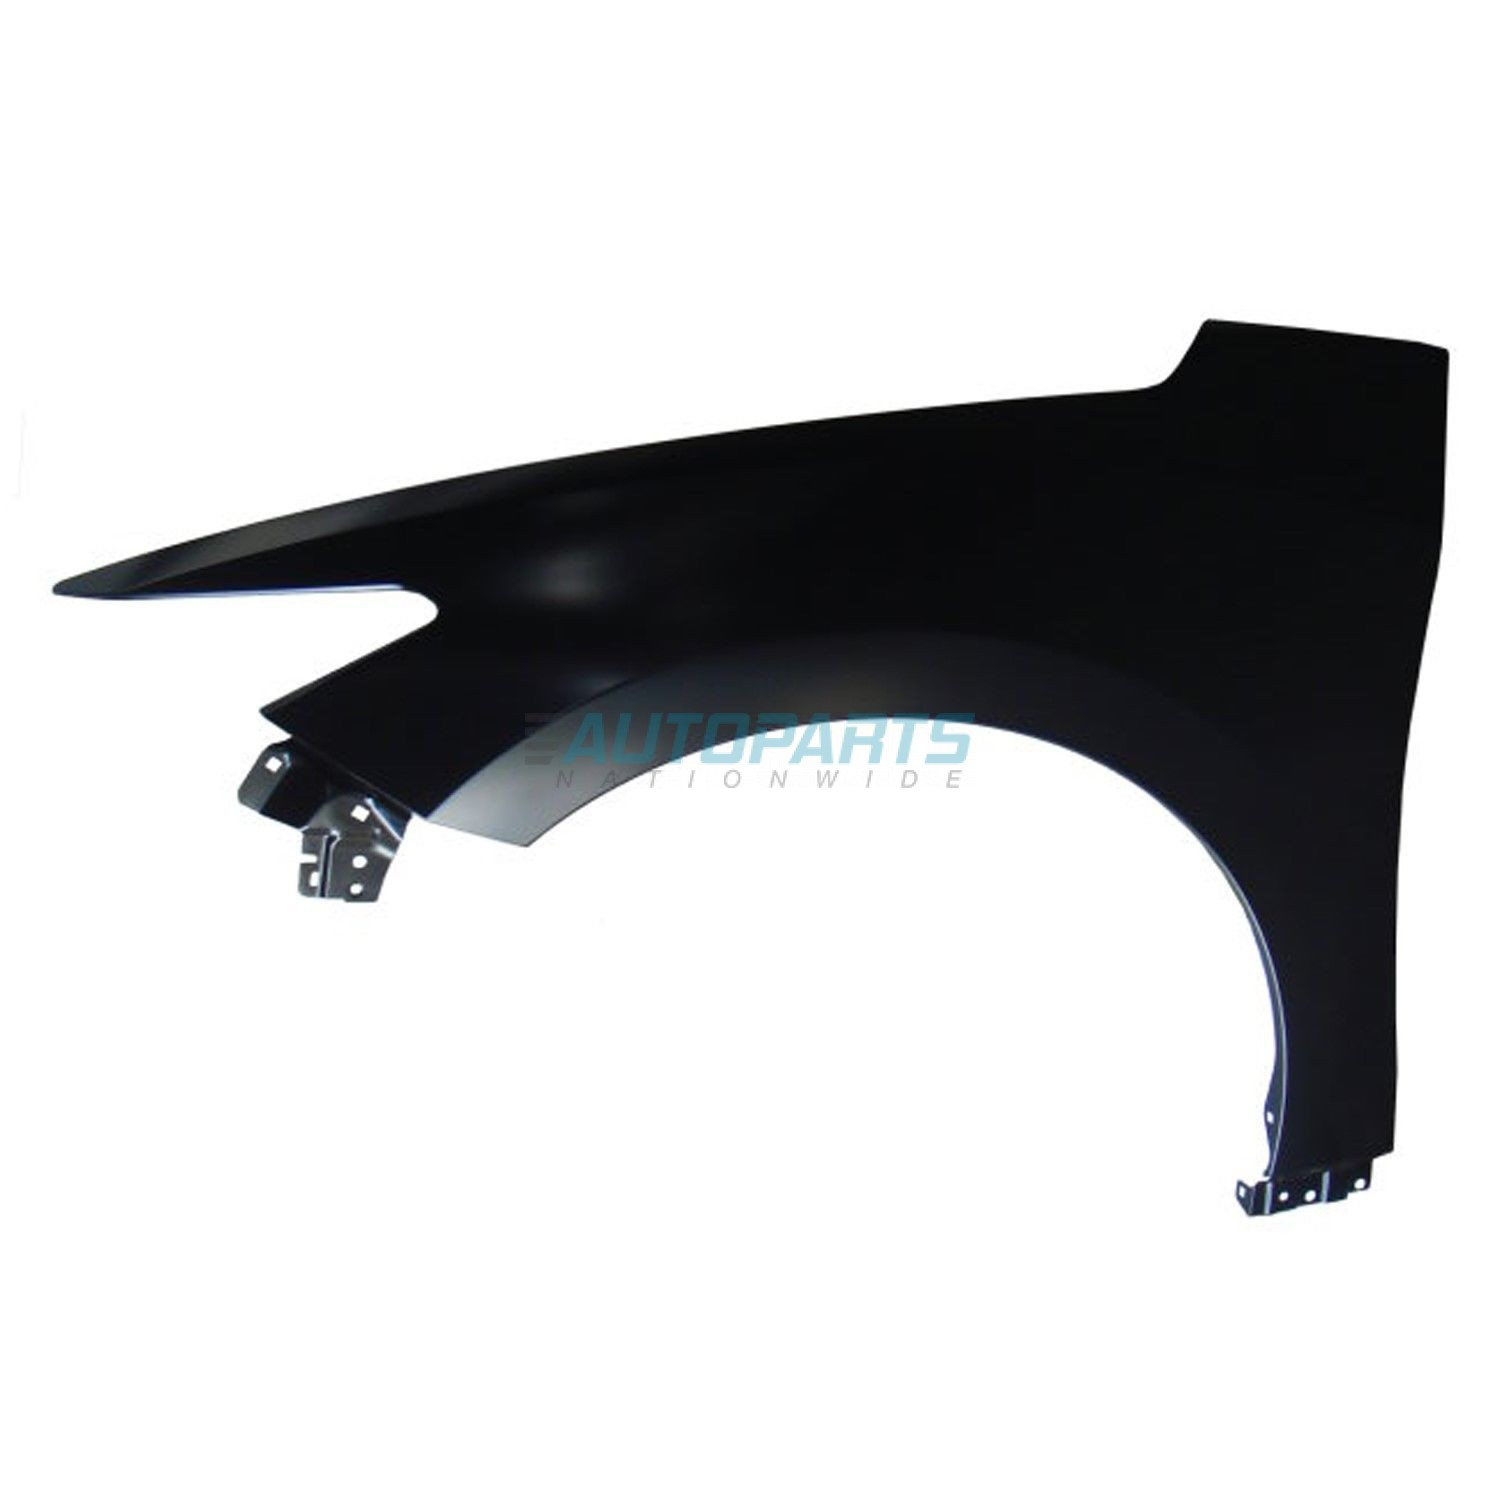 NEW NI1241222 FRONT RIGHT FENDER FOR NISSAN SENTRA 2016-2017